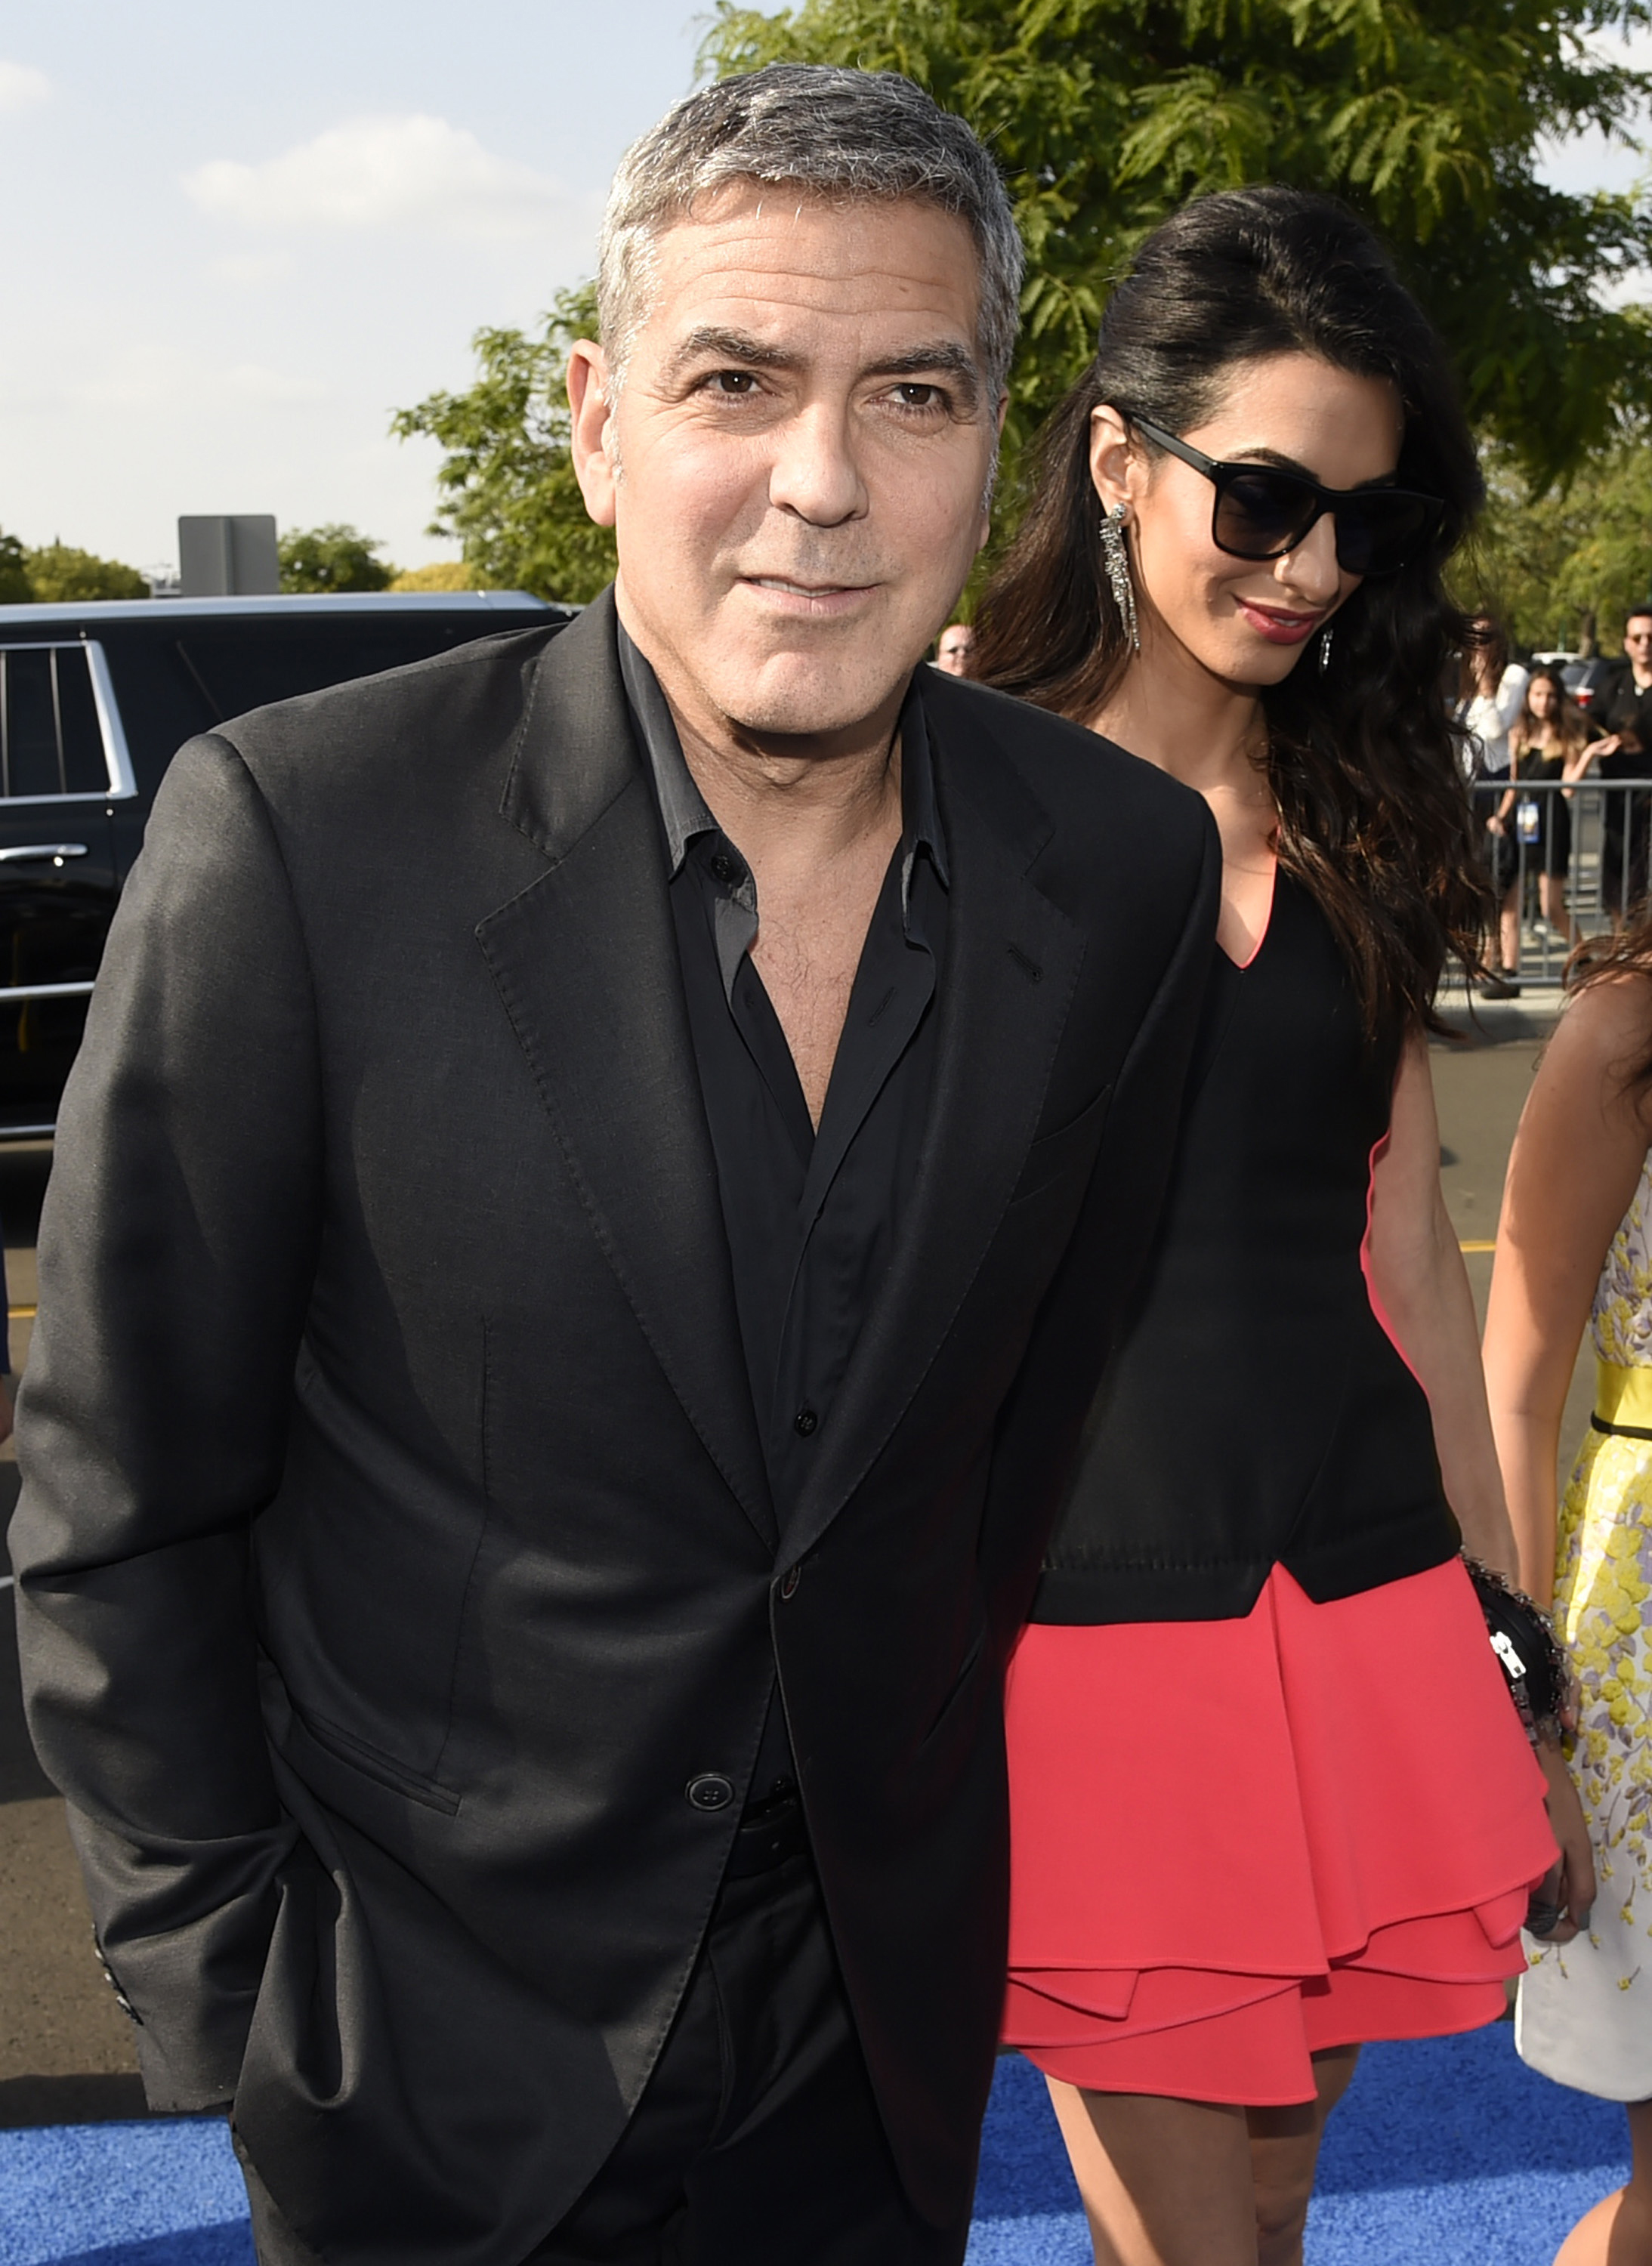 George Clooney and Amal Clooney arrive at the world premiere of  Tomorrowland  at AMC Downtown Disney on May 9, 2015, in Anaheim, Calif.